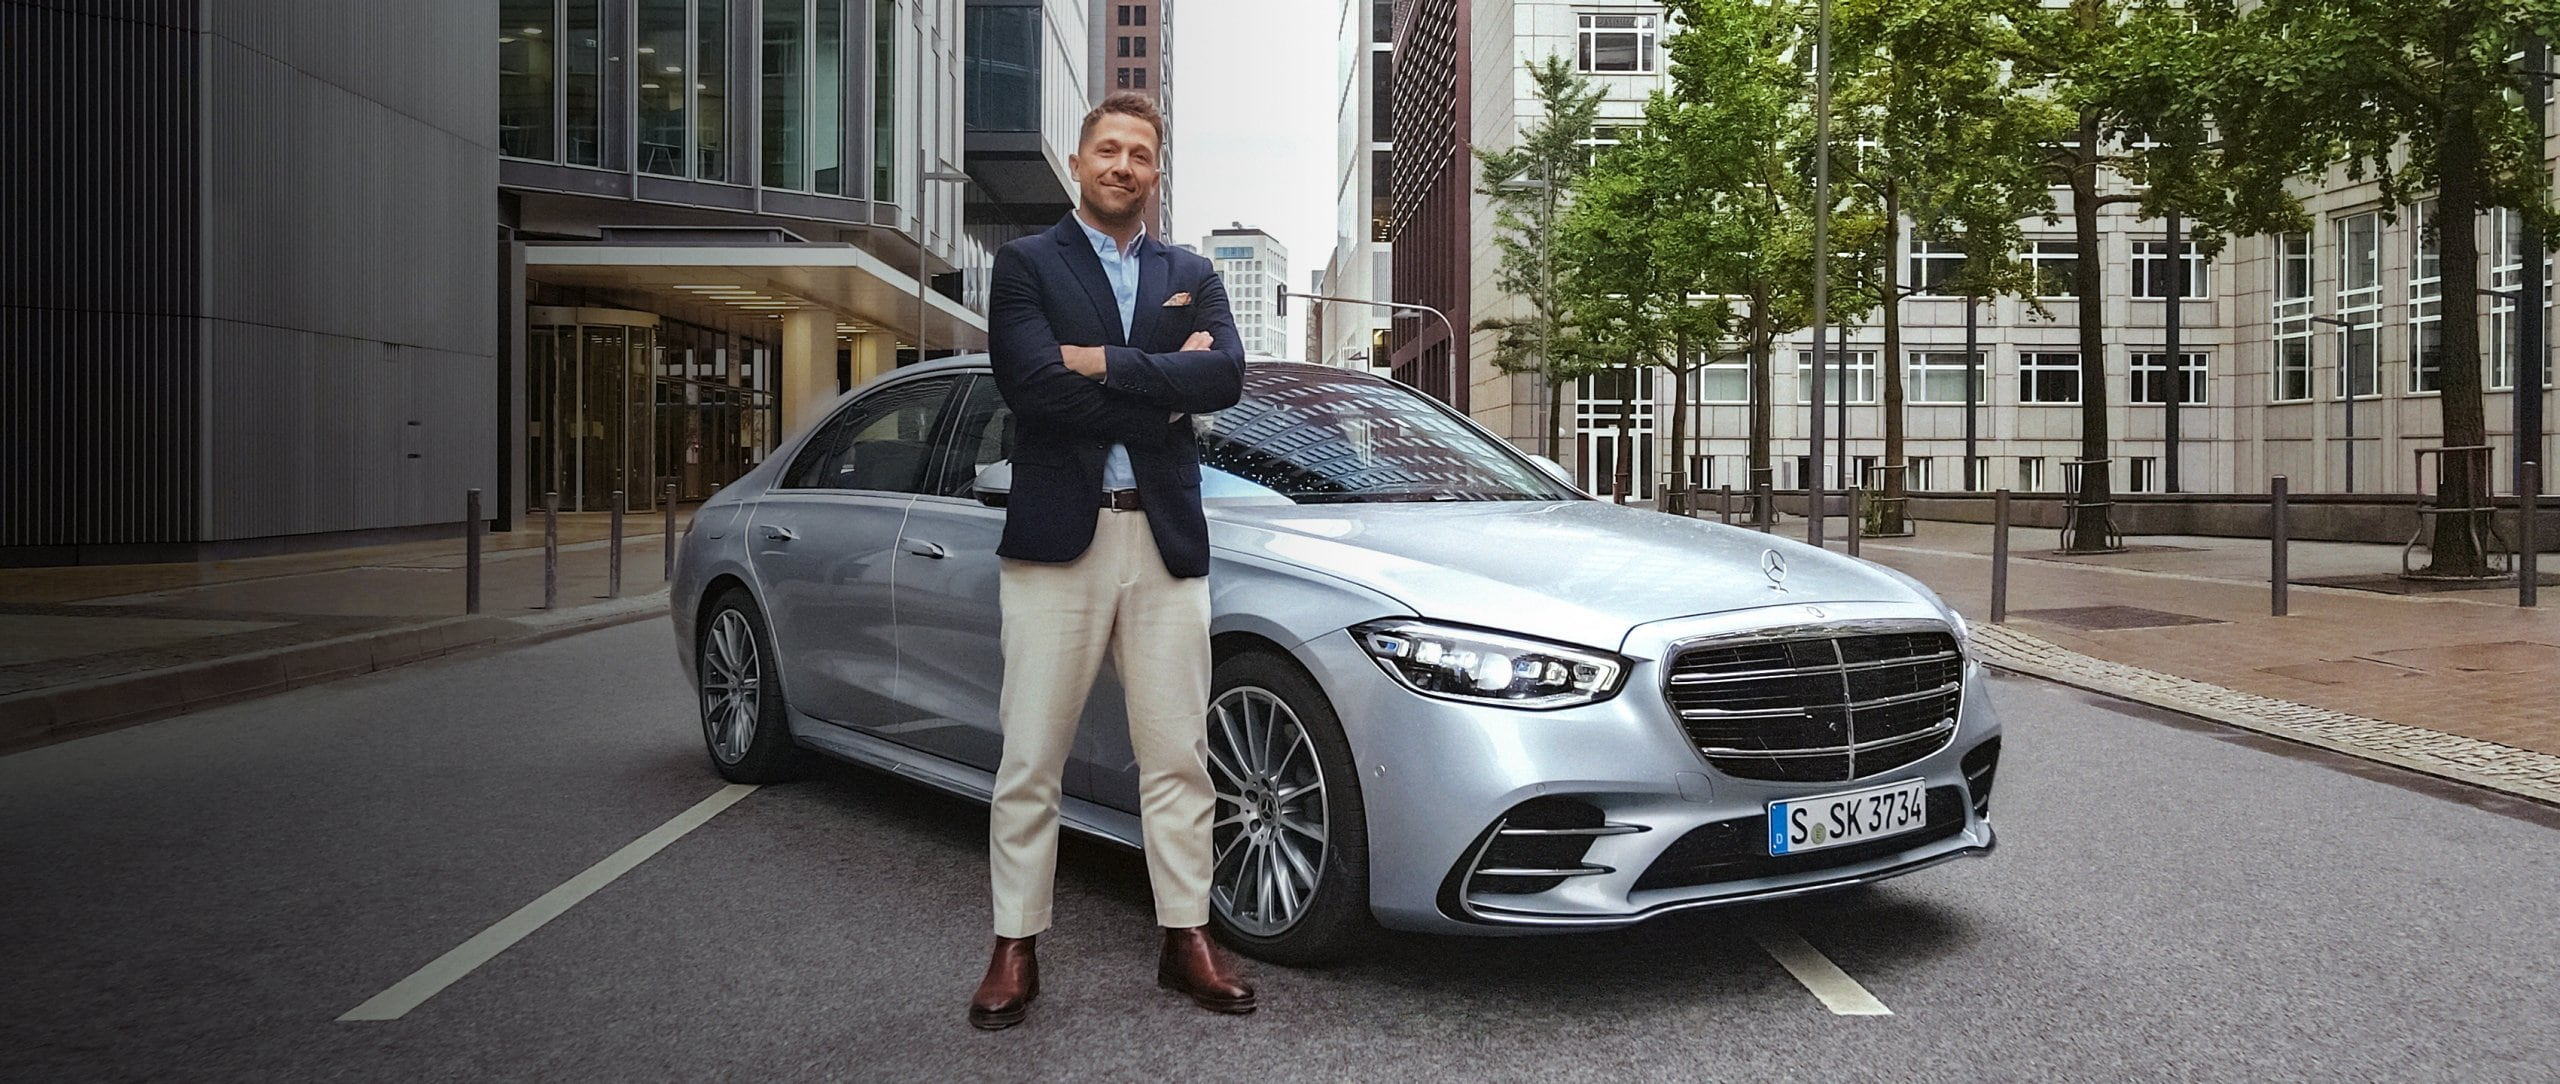 Florian Ambrosius stands in front of the new Mercedes-Benz S-Class (2020). Skyscrapers can be seen in the background.